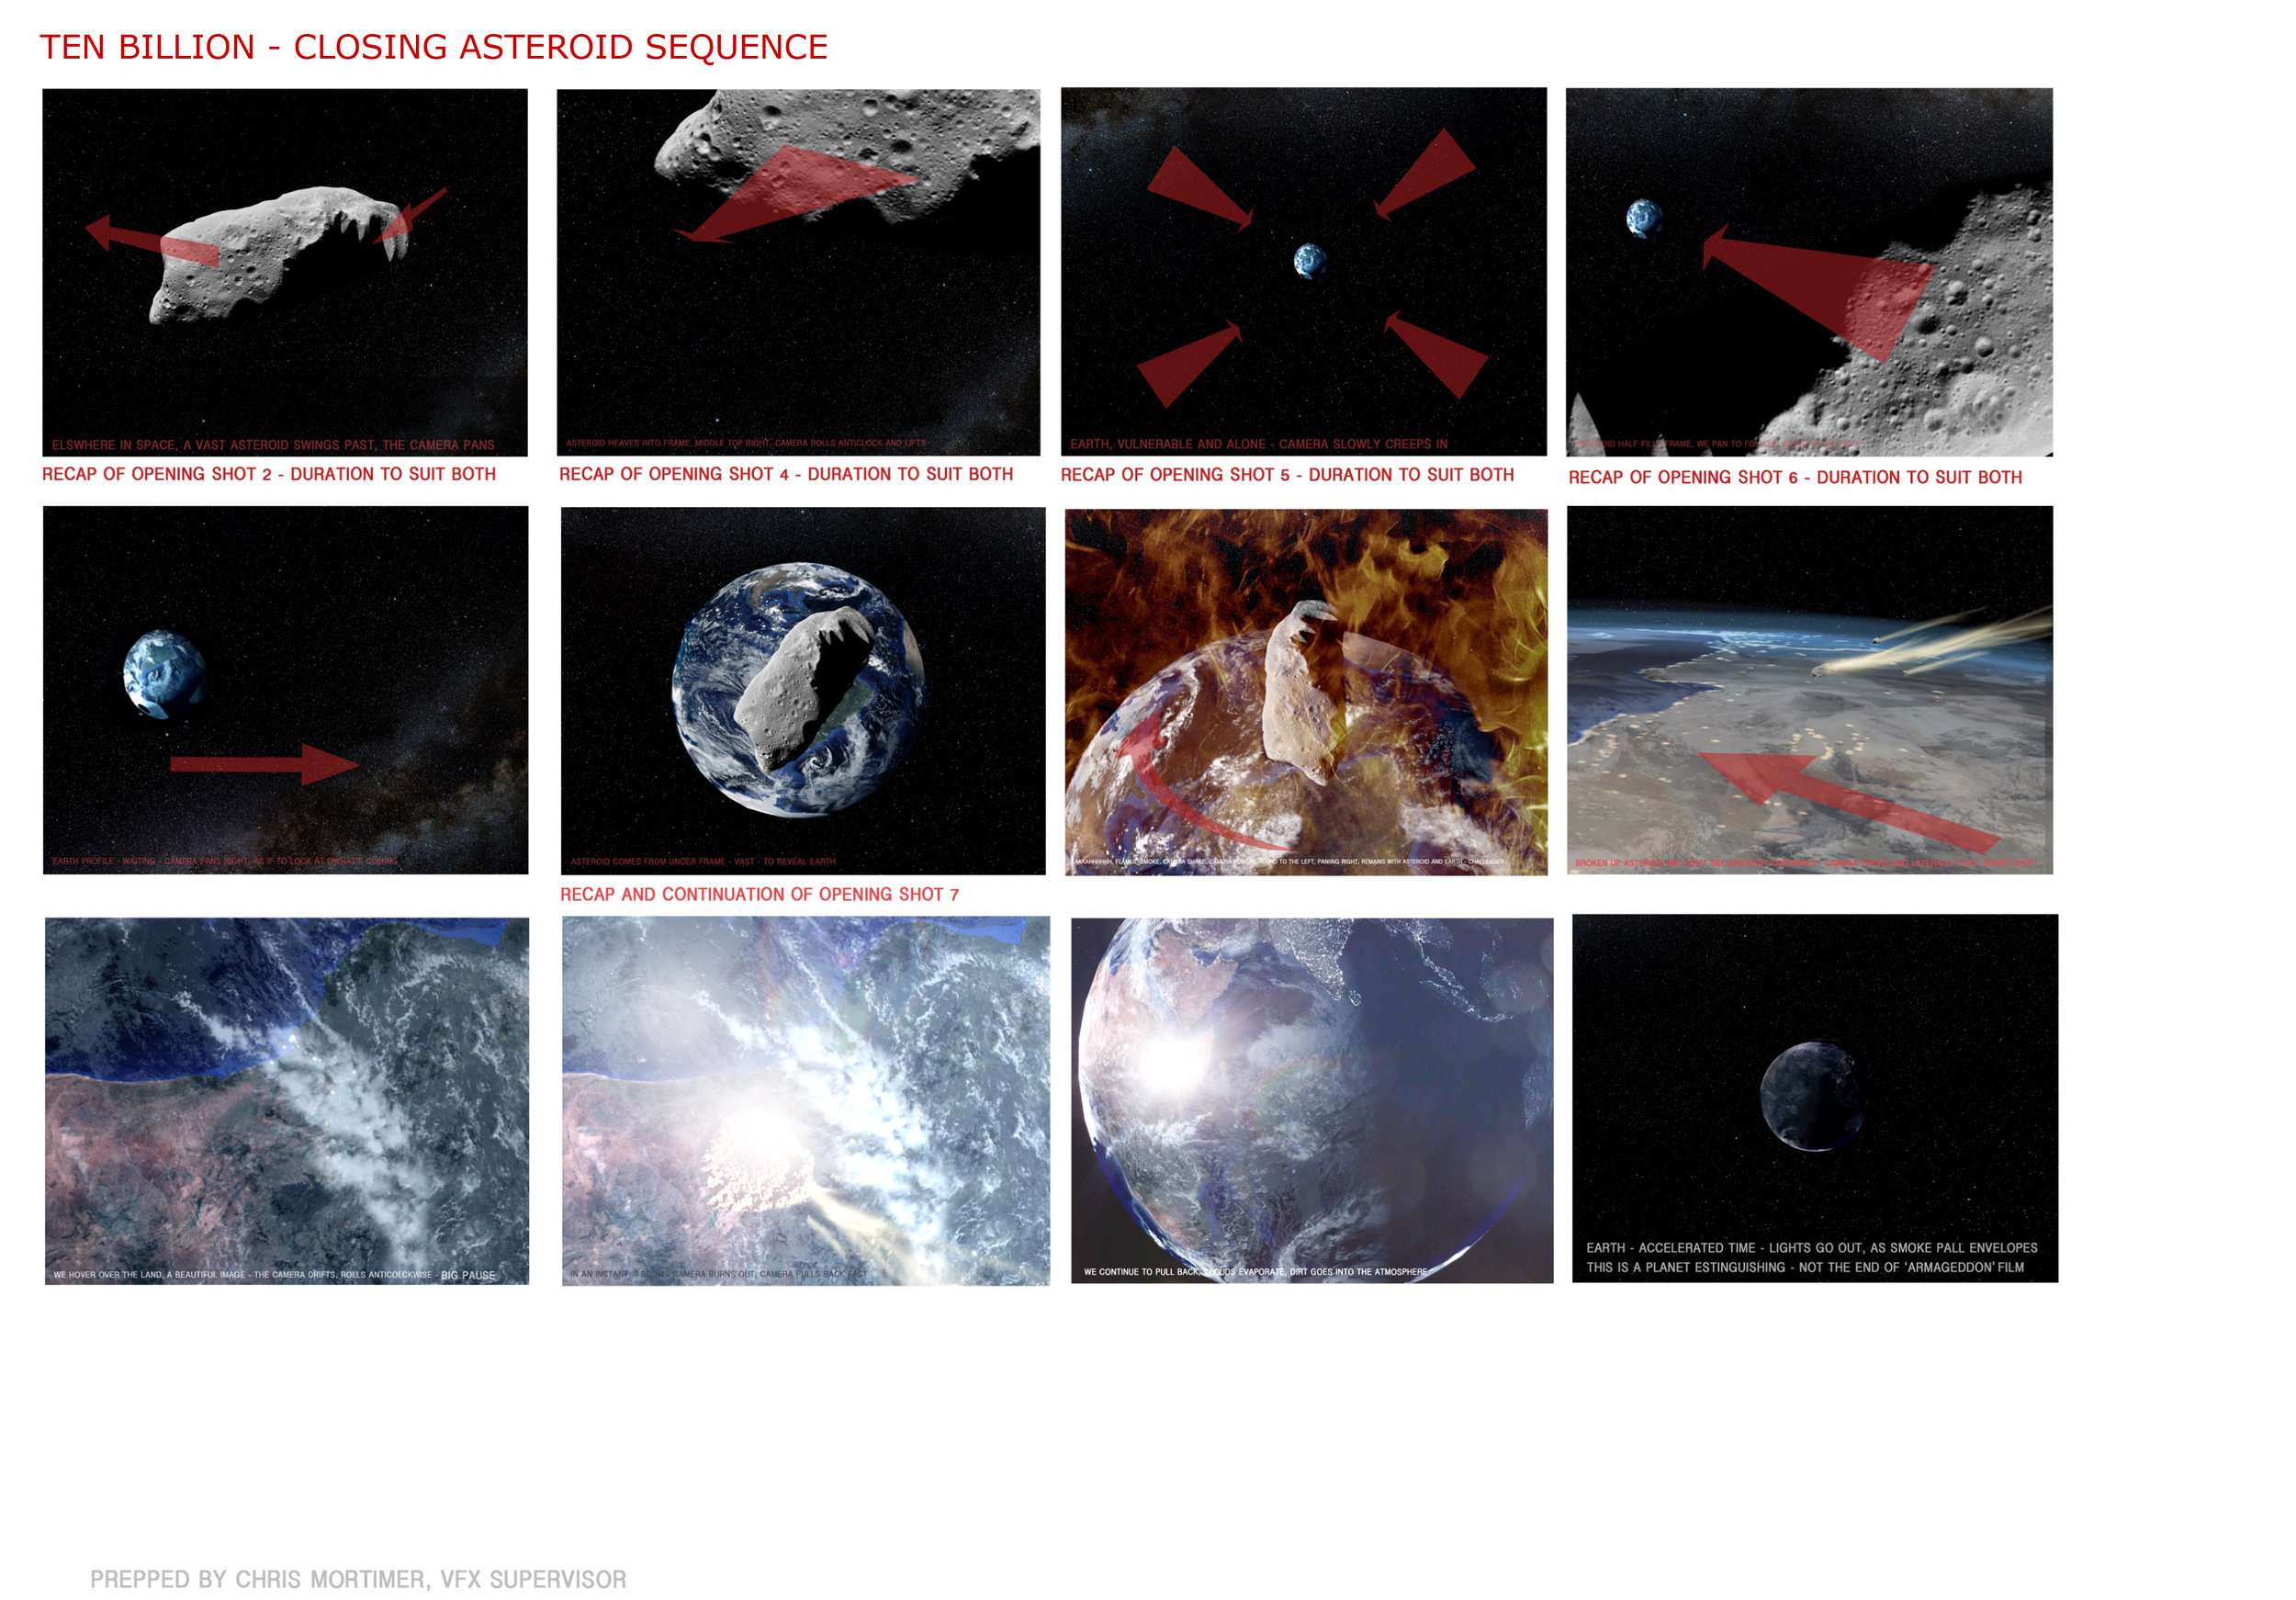 2-asteroid_closing_storyboard_REV.jpg